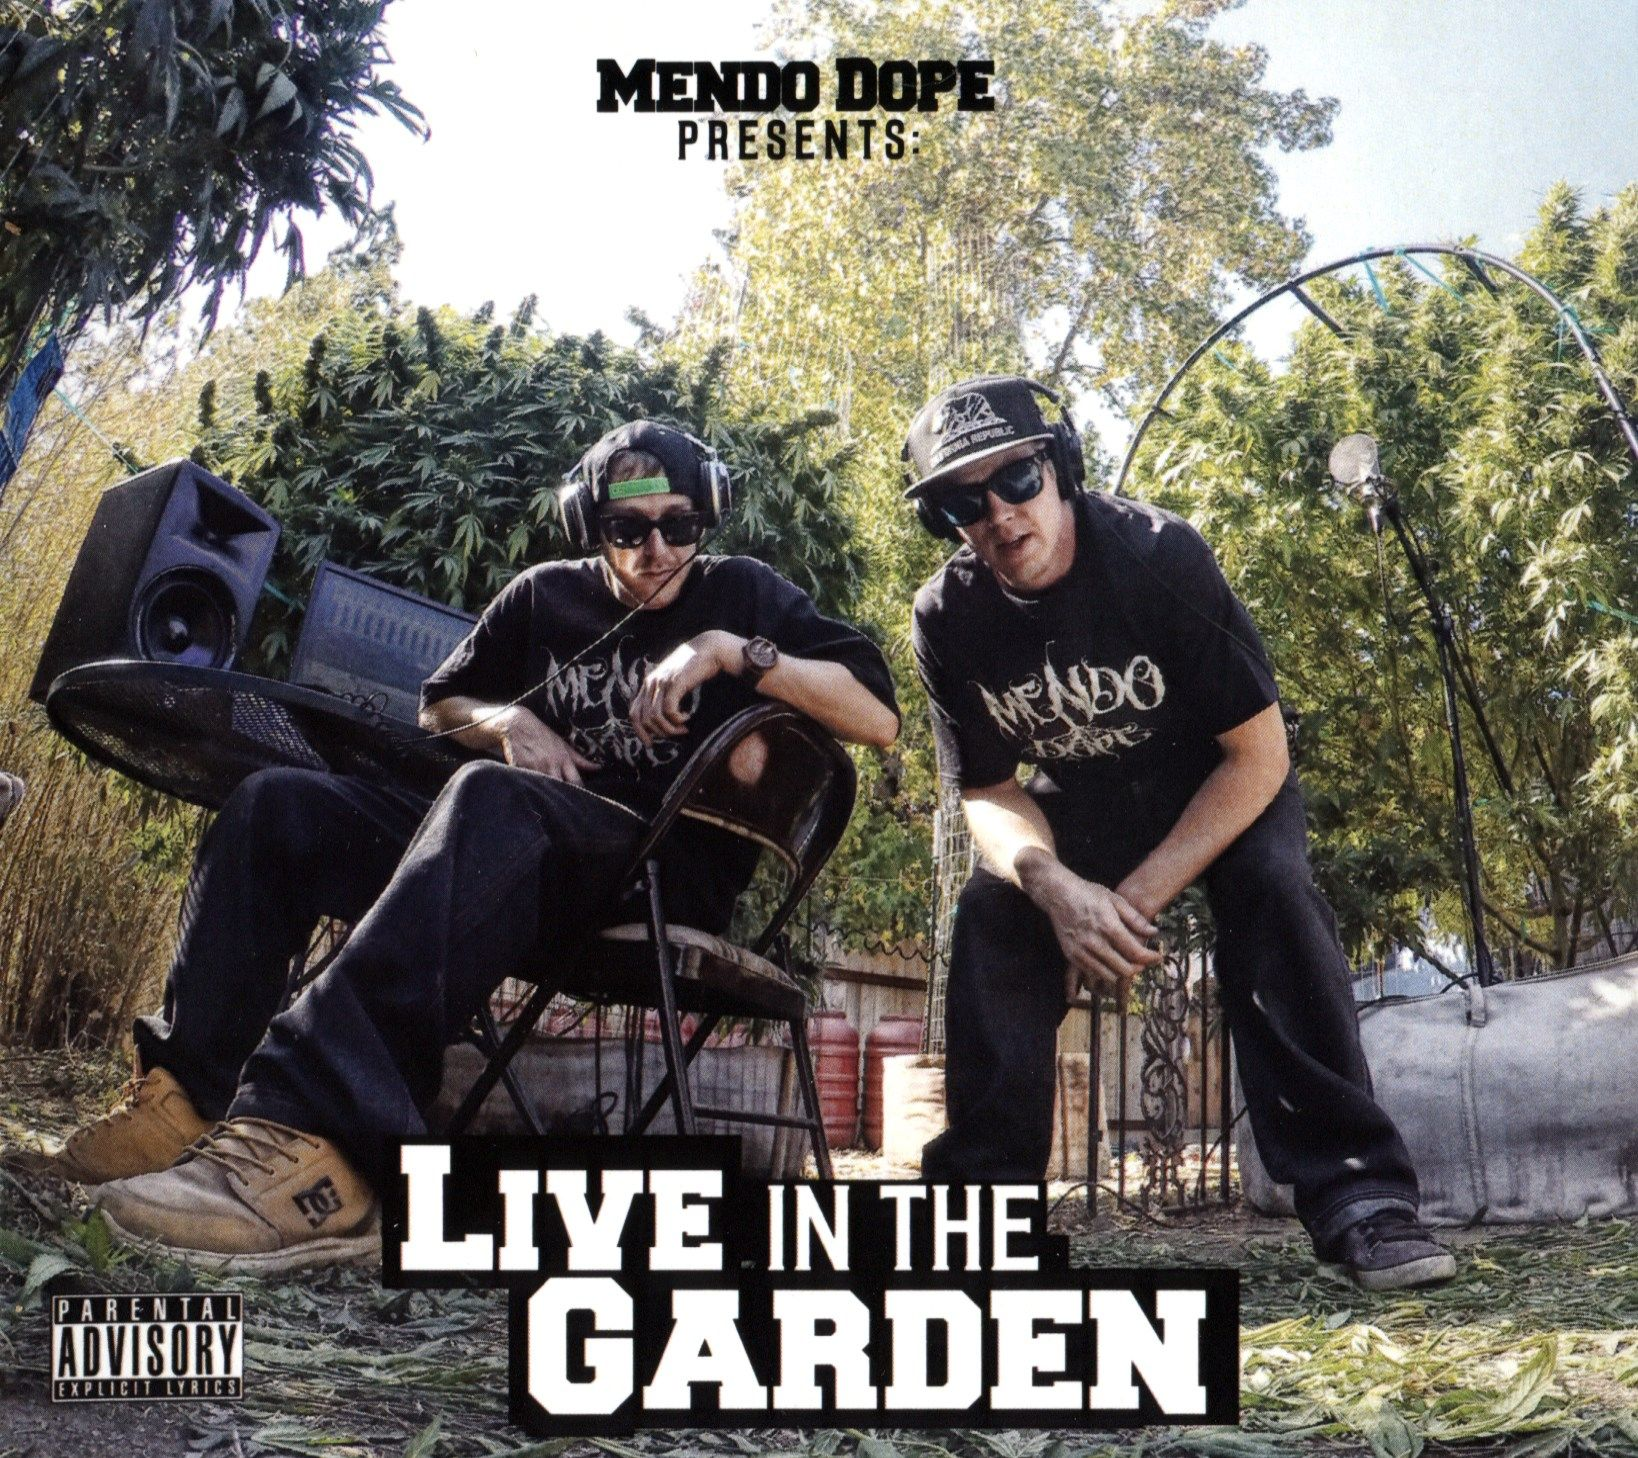 Mendo Dope: The Making of Live in the Garden